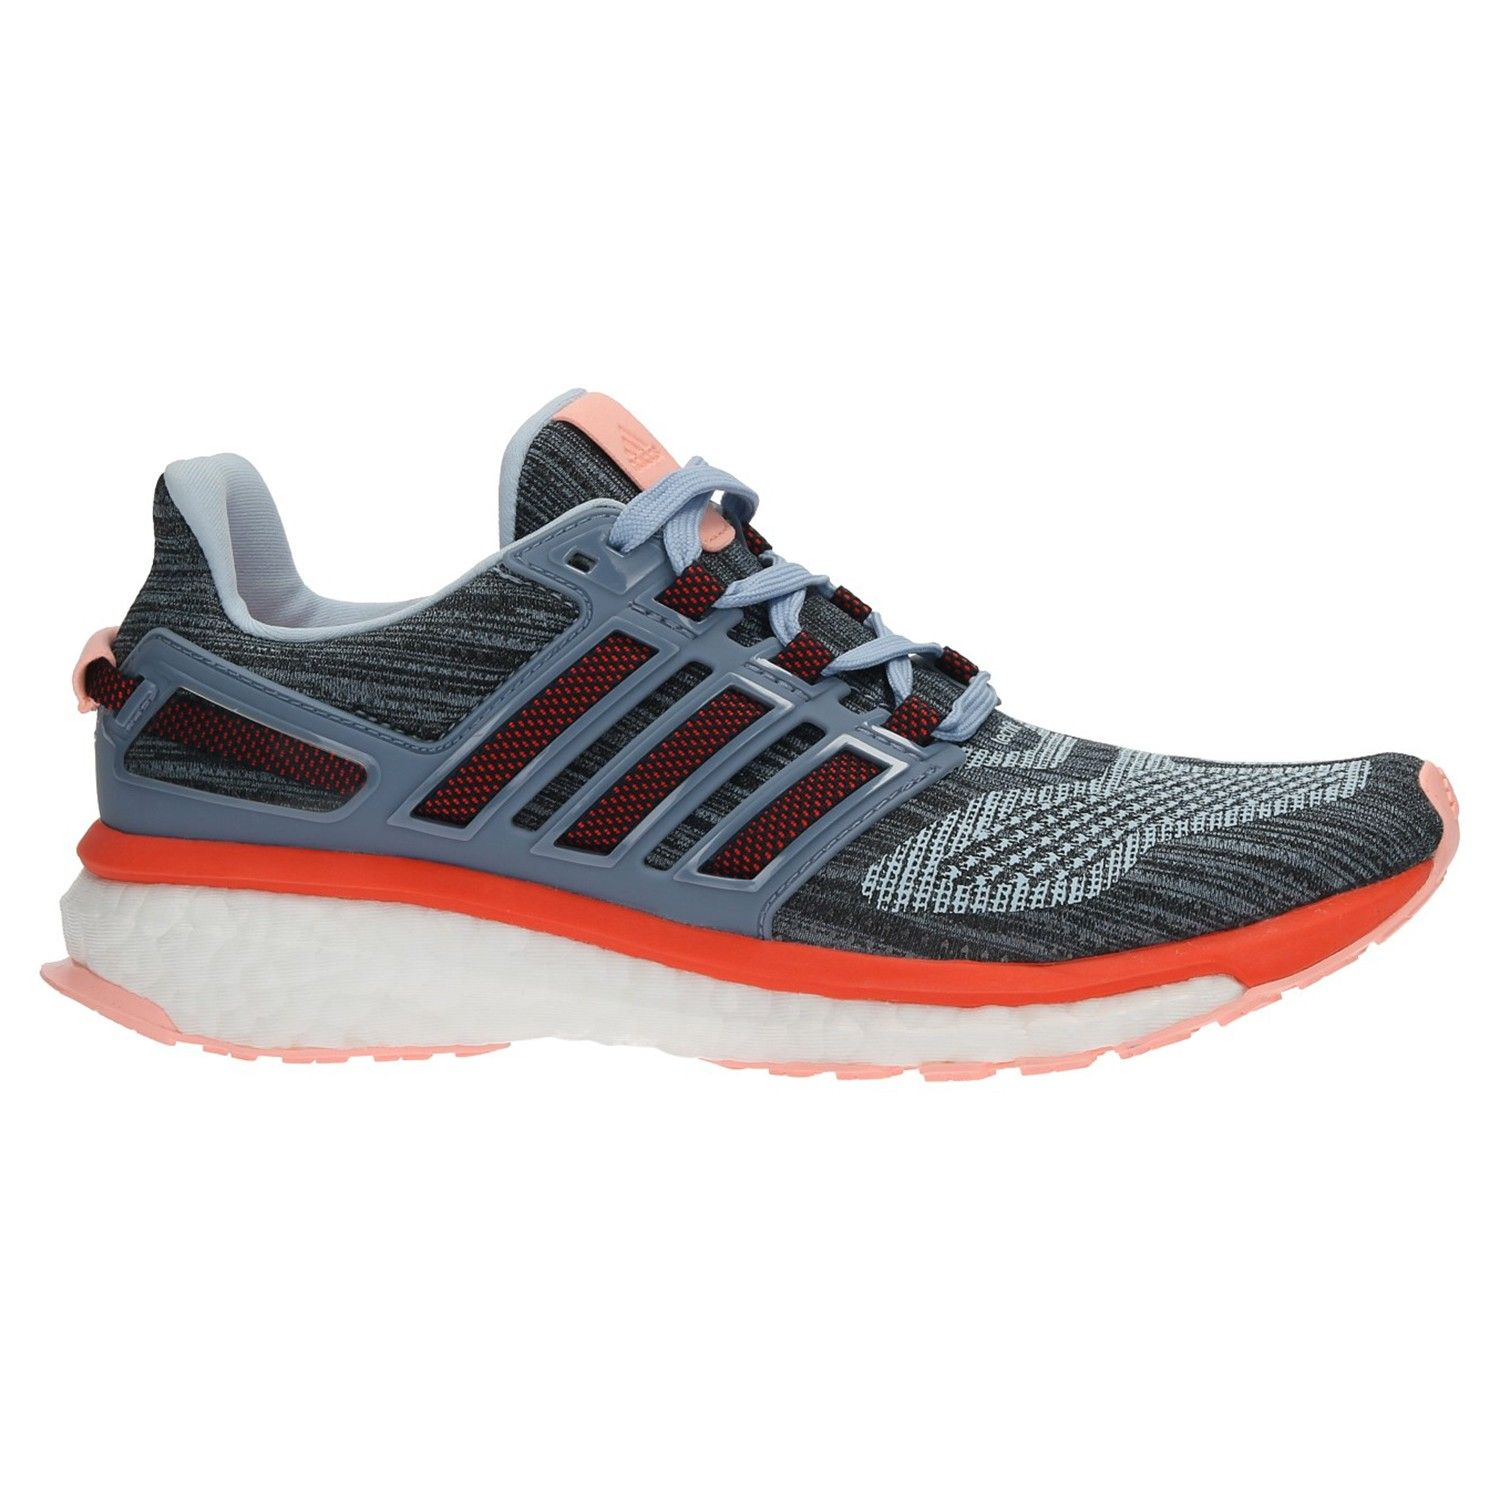 online retailer bea85 cf46d adidas Energy Boost 3 BB5791 buty damskie r 40 23